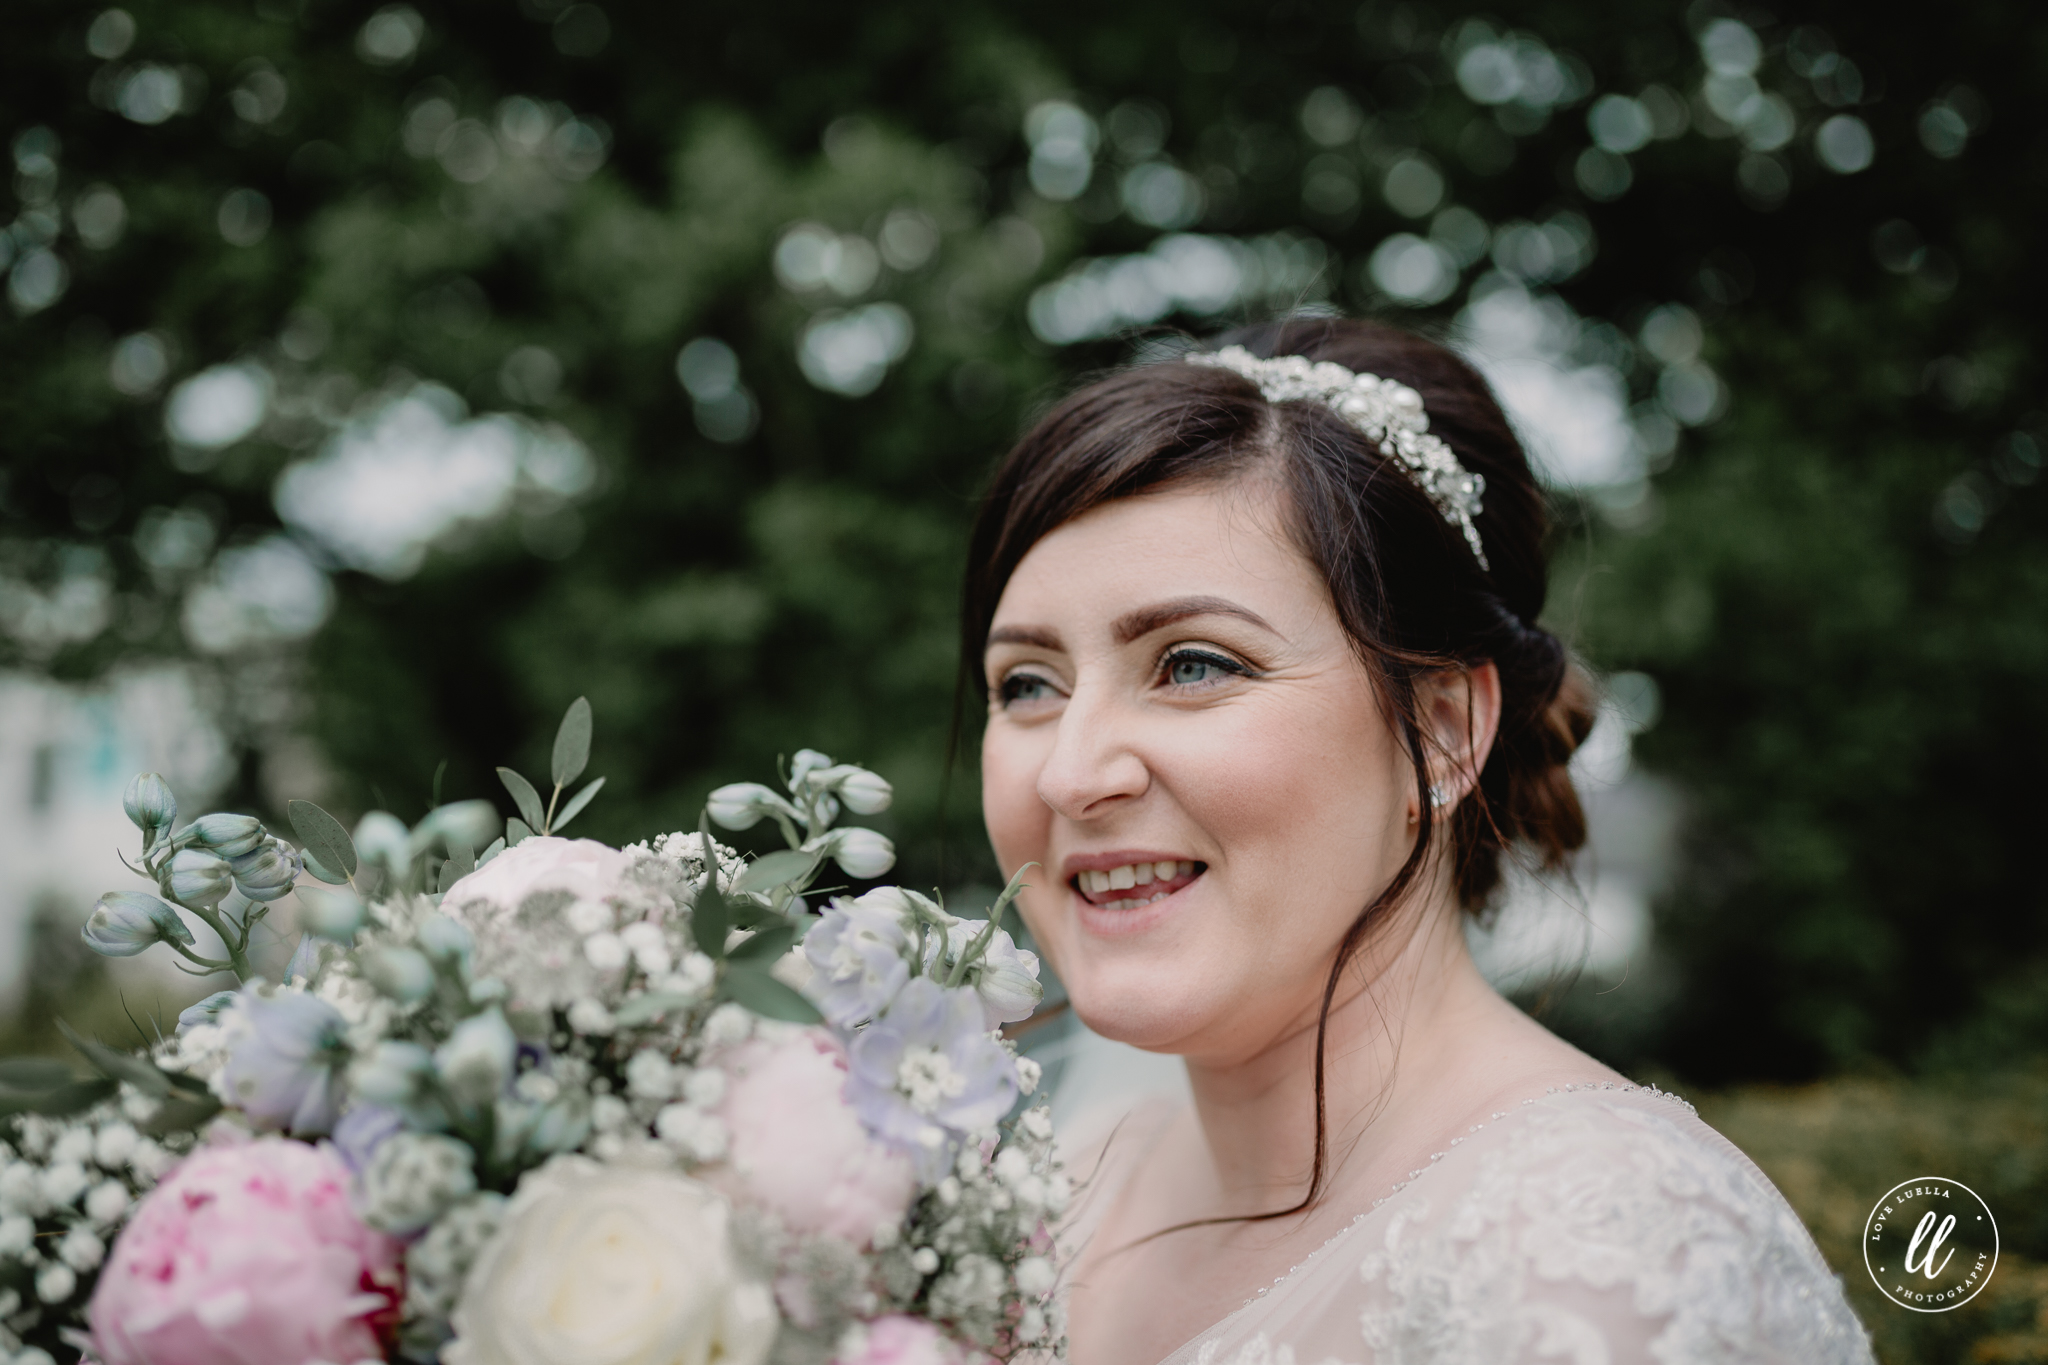 The bride laughing holding her bouquet close to her face